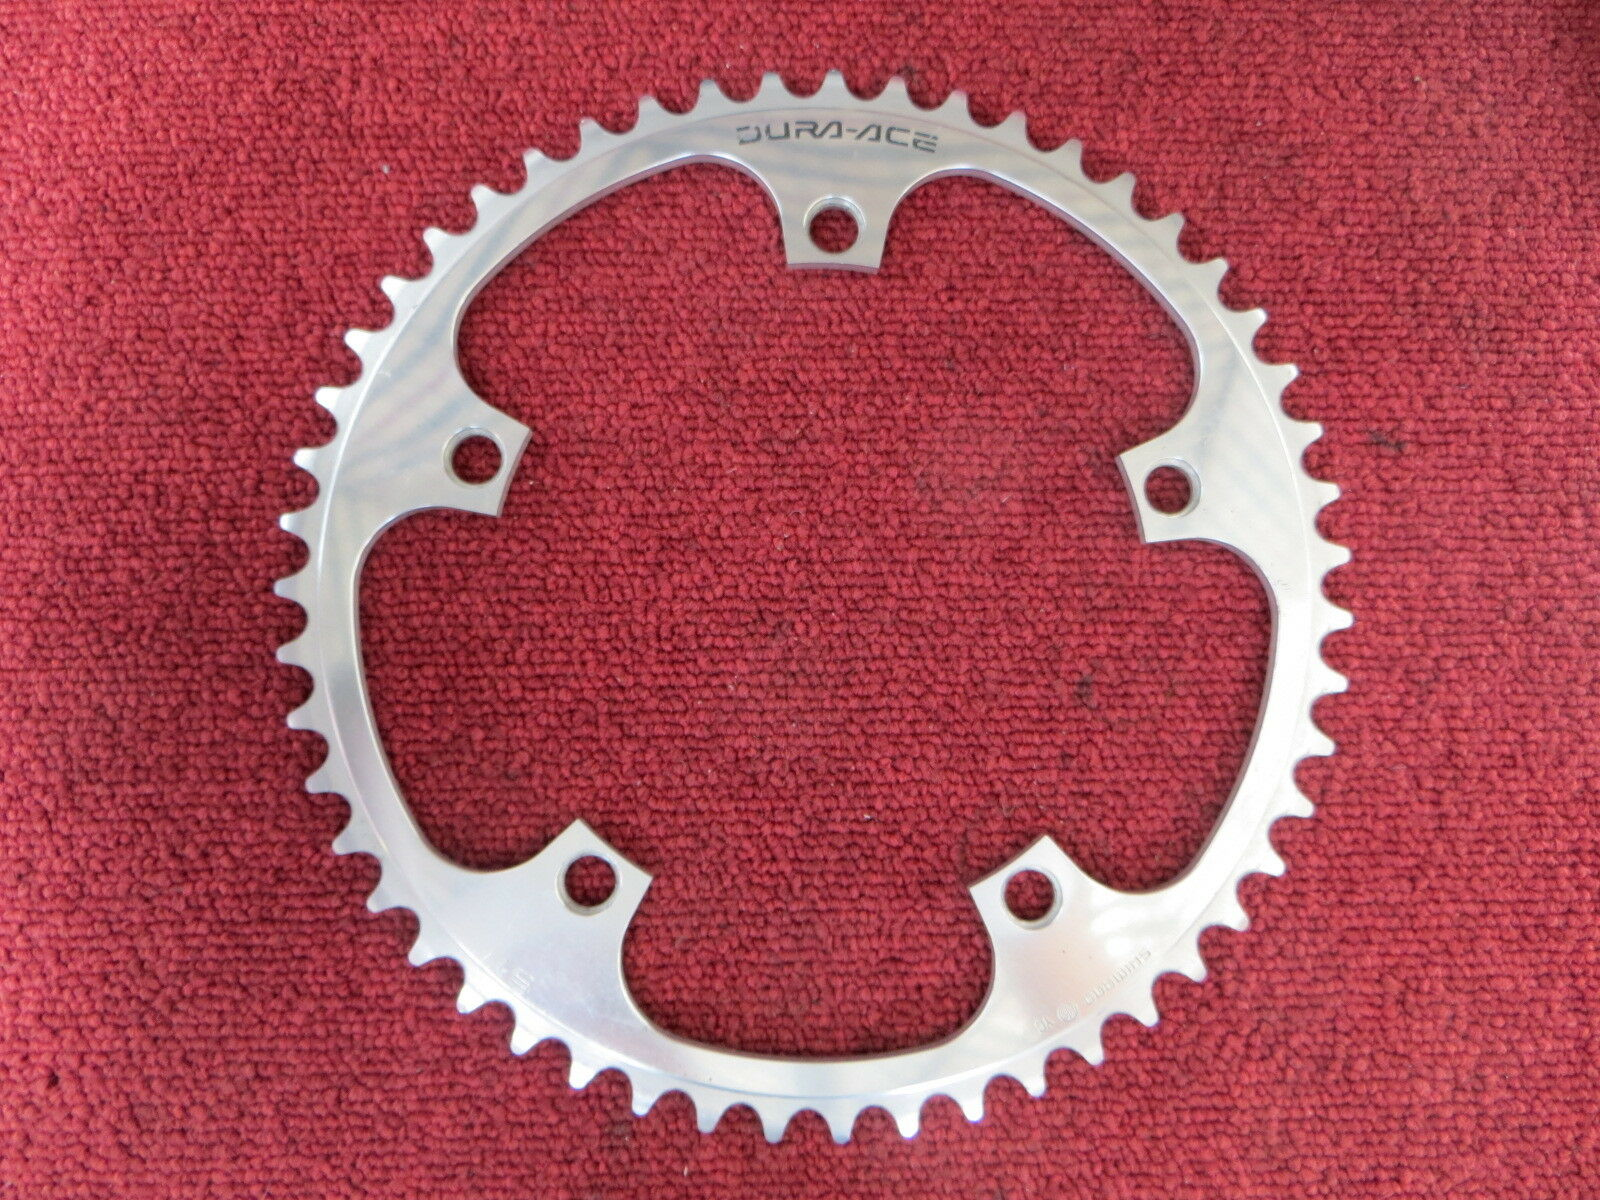 Shiuomoo Dura Ace FC7600 144BCD 18  NJS Chainring 51T Fixed Gear 18062828